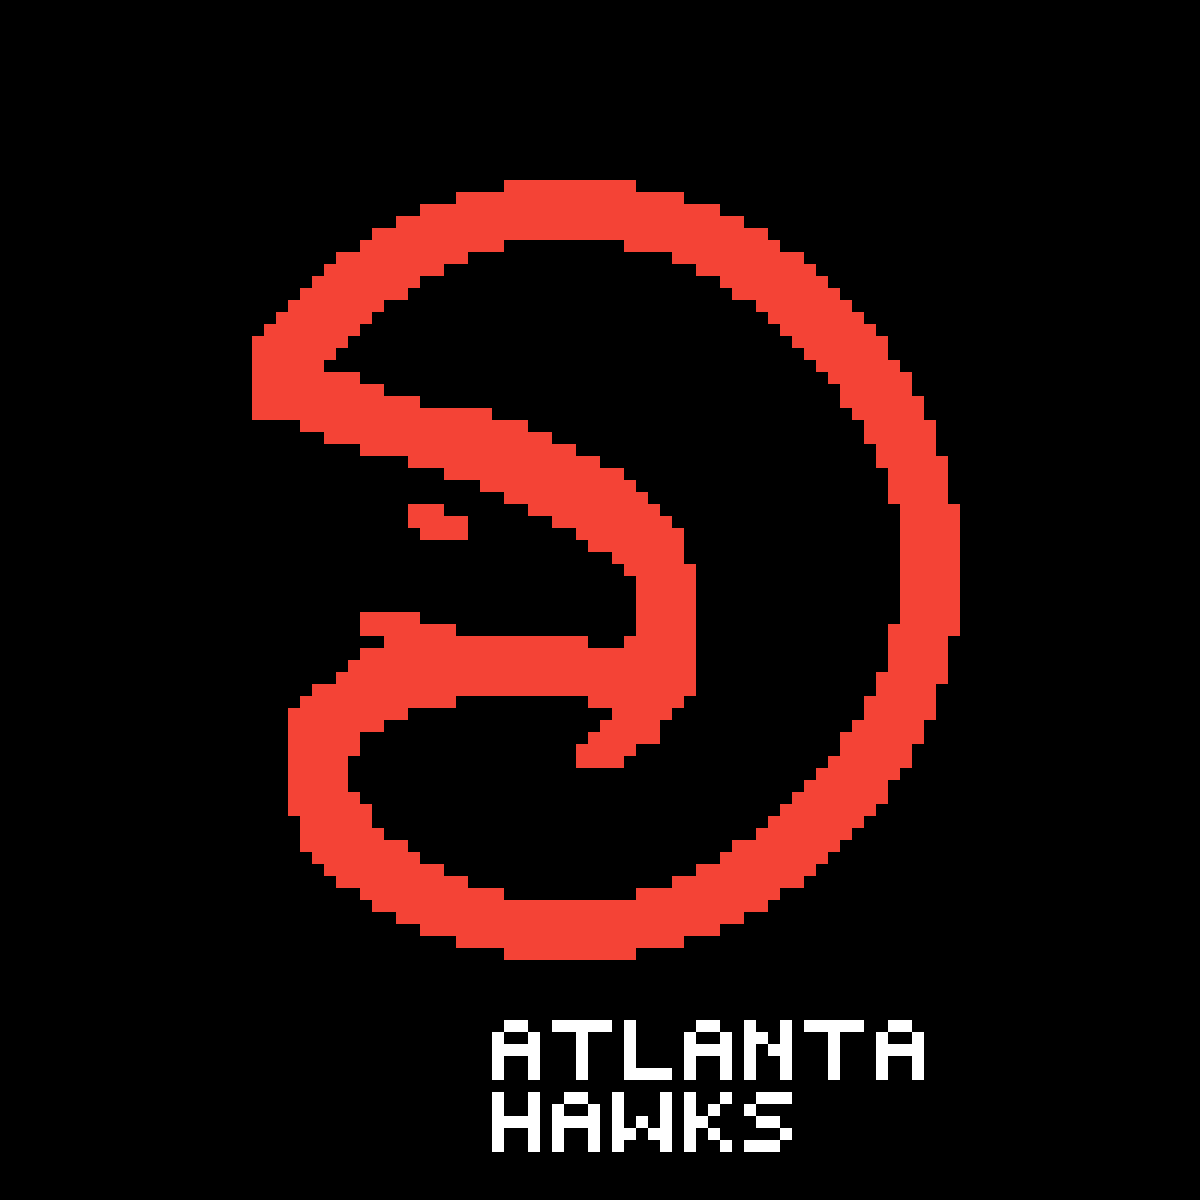 Atlanta Hawkas by Slowpoke